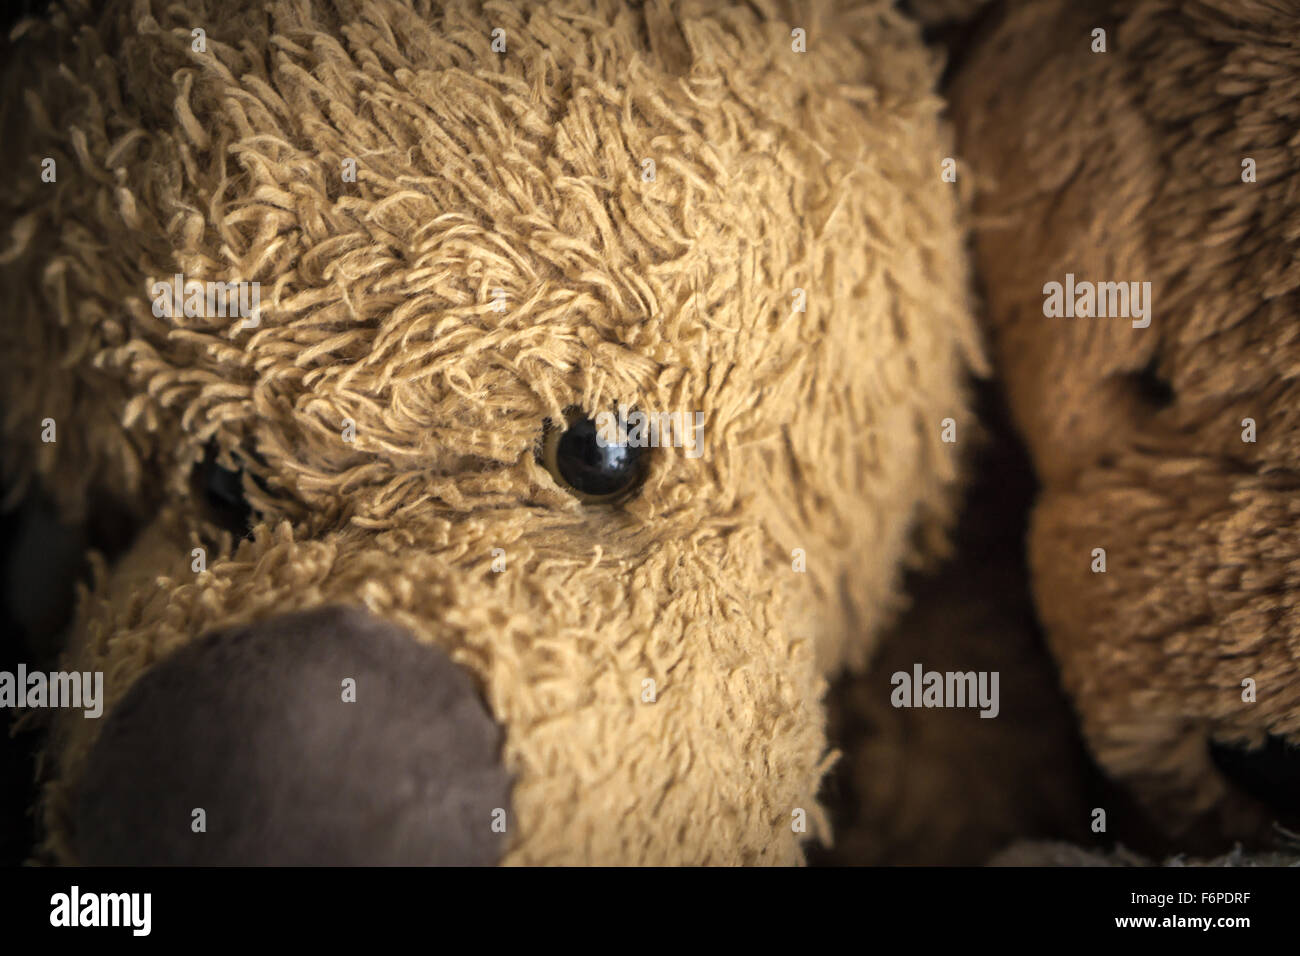 Close up of faces of two cuddly toys. Stock Photo